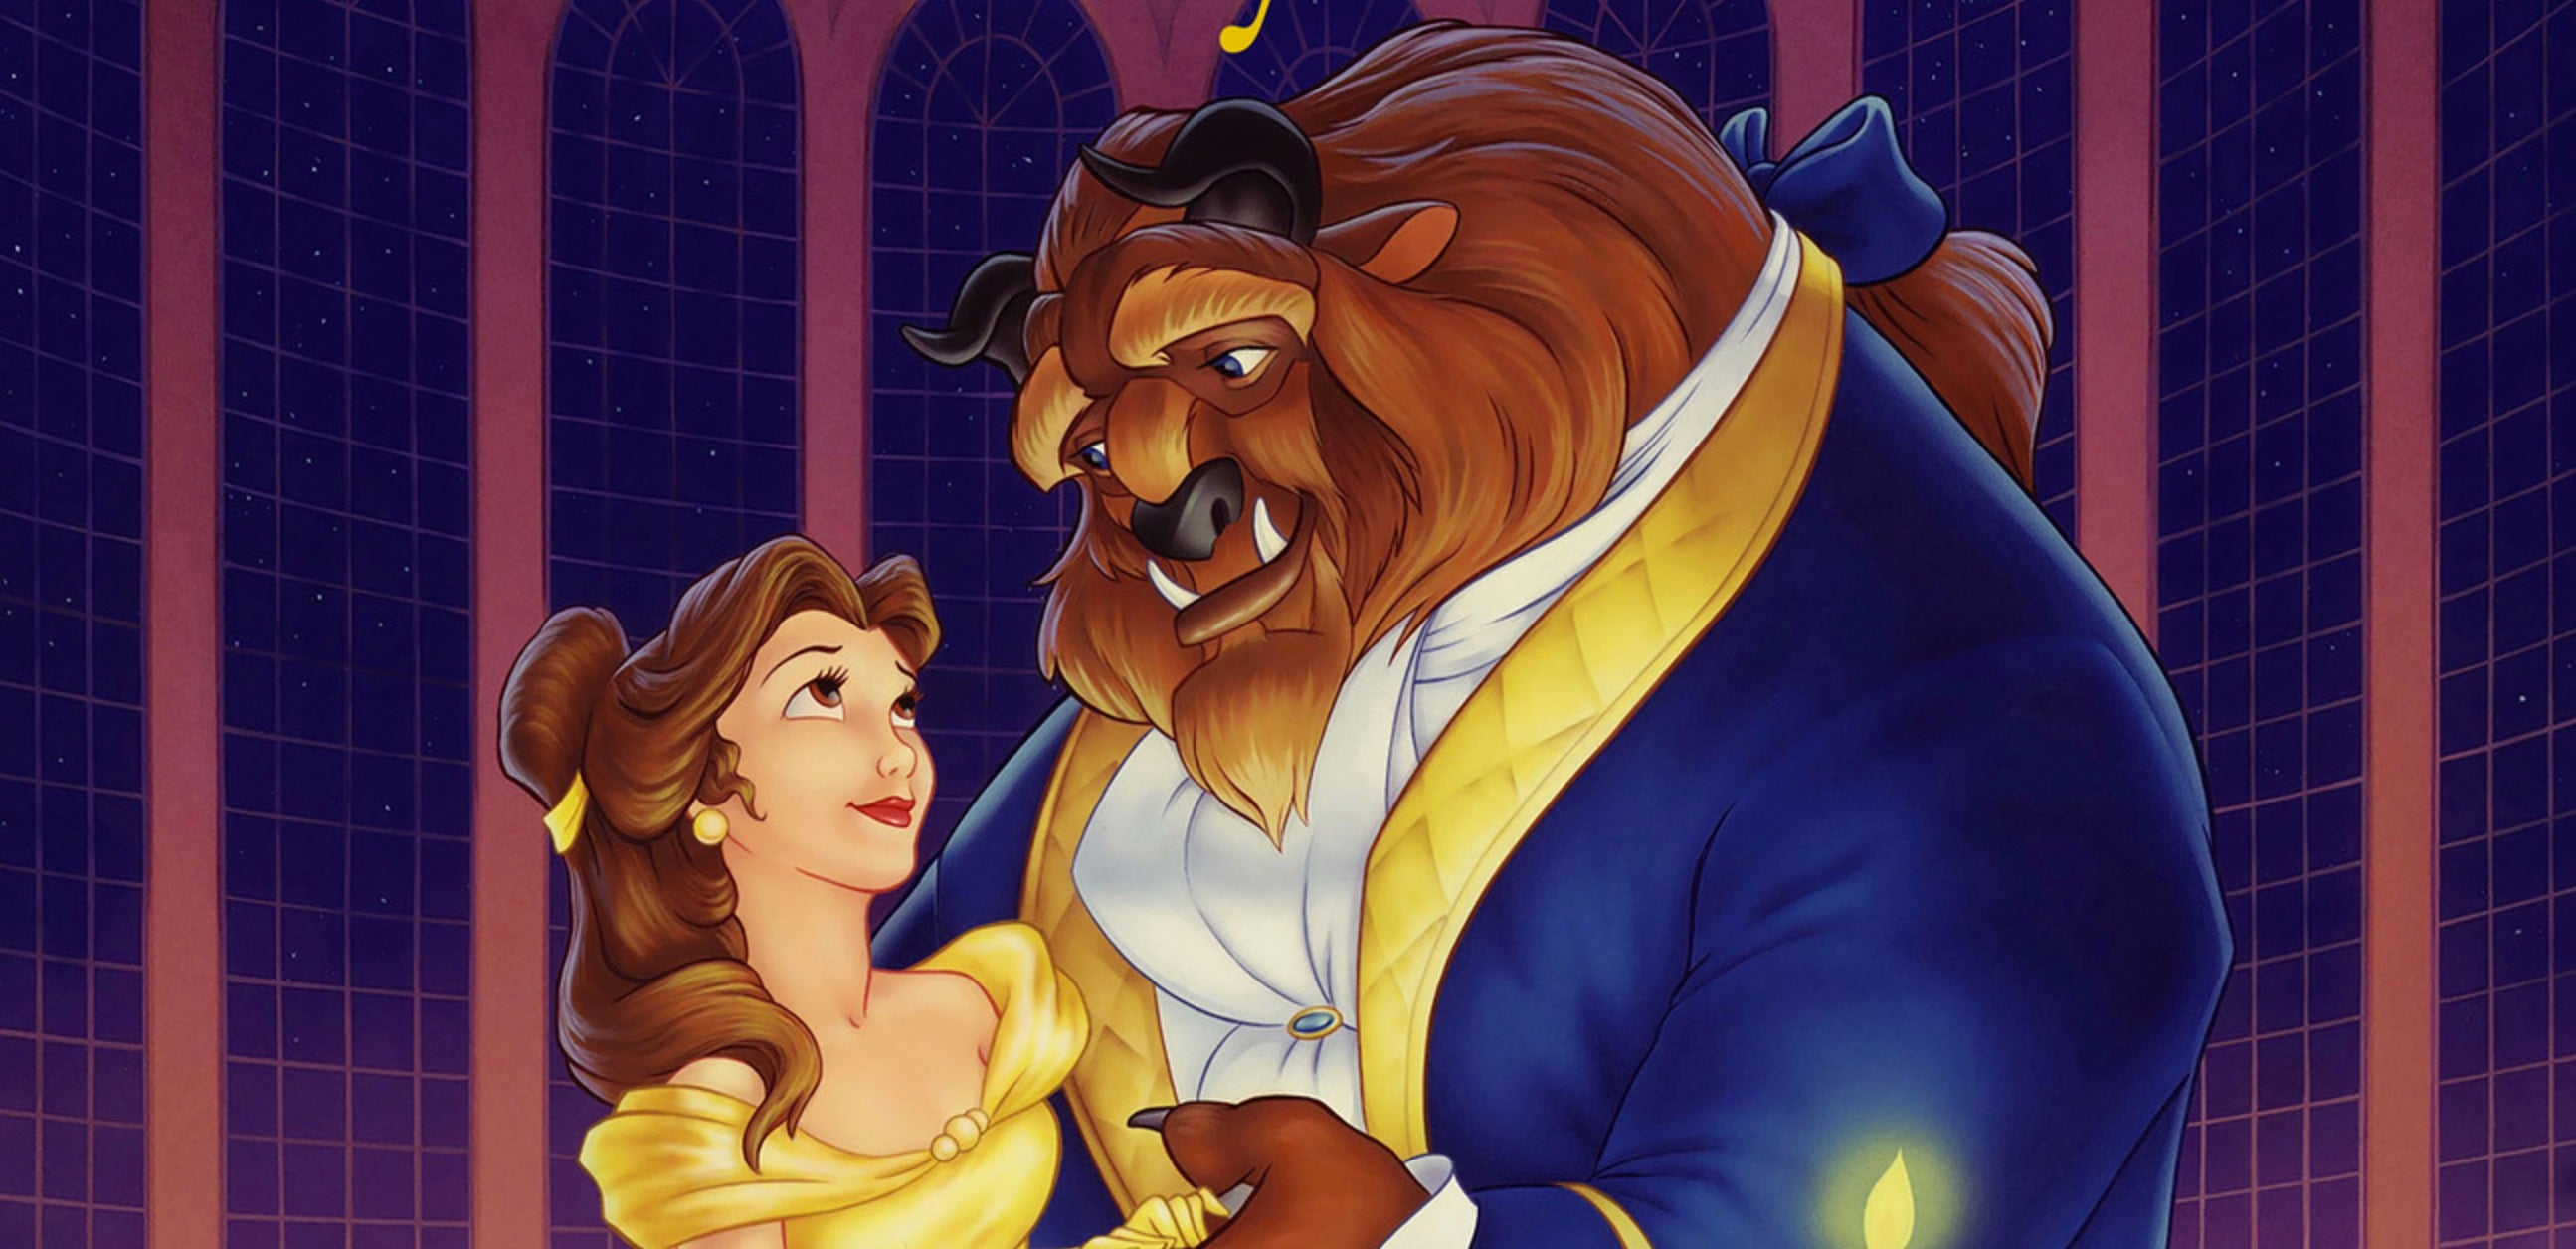 The Animated Beauty And The Beast Remains A Near-Perfect Masterpiece